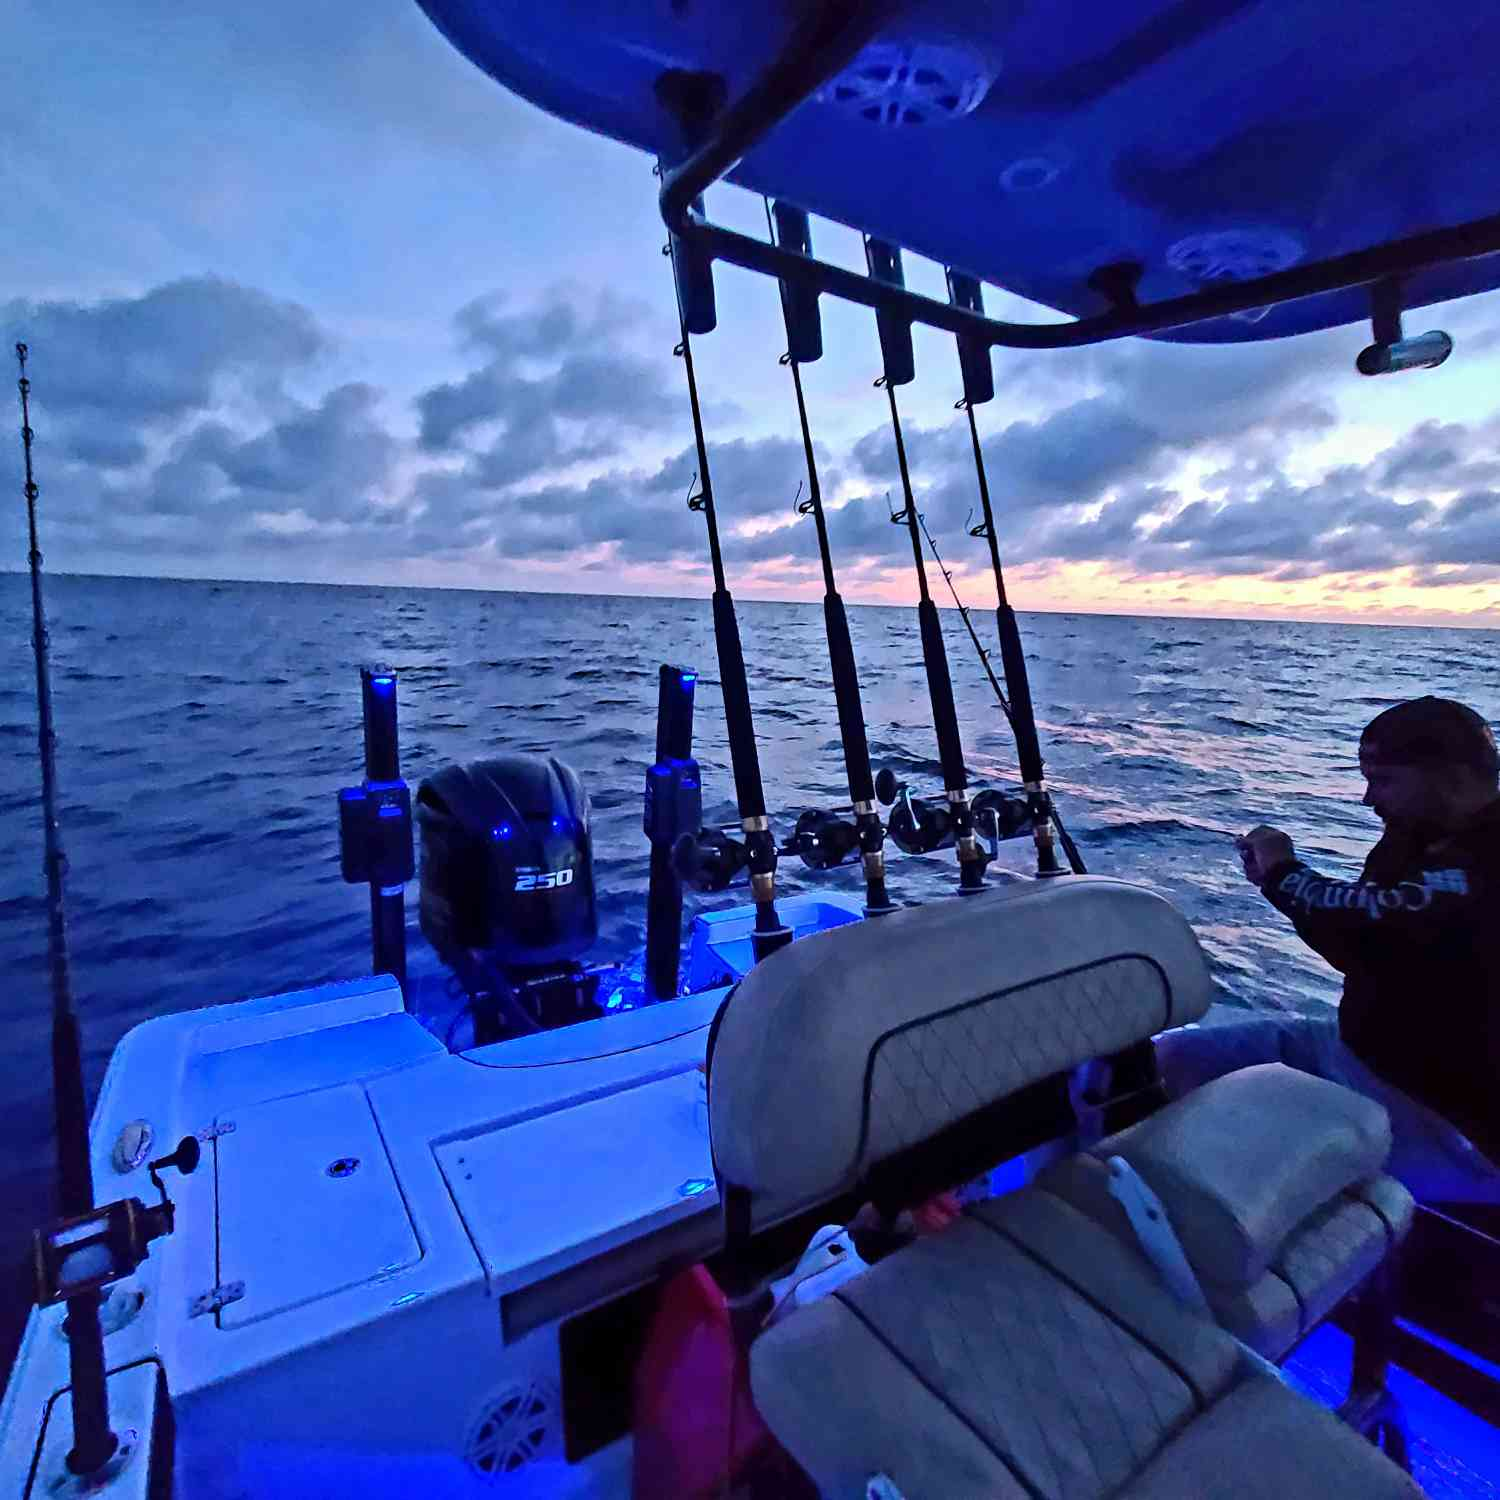 Title: 50 miles out on the deep blue - On board their Sportsman Masters 227 Bay Boat - Location: Atlantic ocean. Participating in the Photo Contest #SportsmanNovember2020